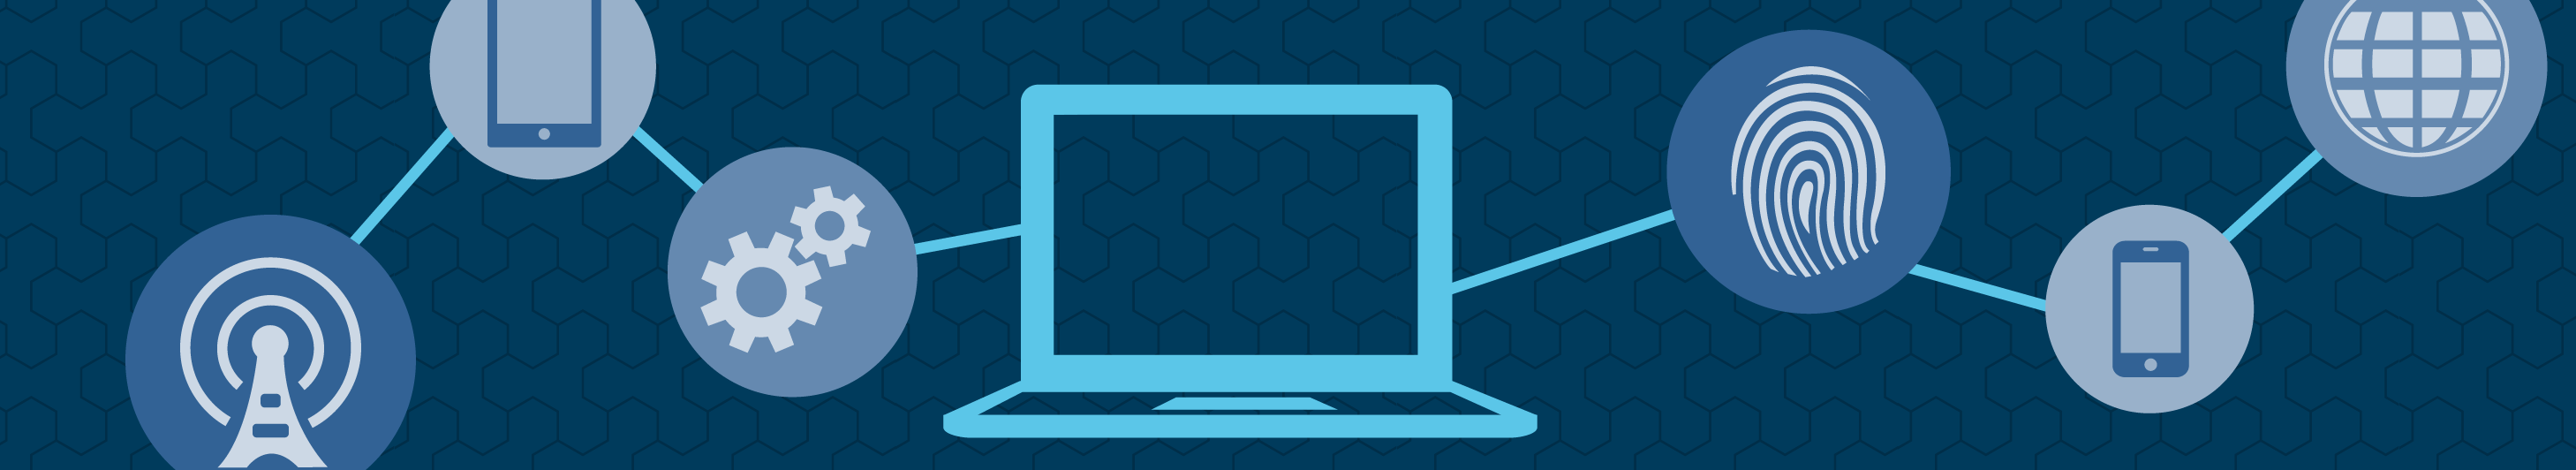 illustration of a laptop in a blue background